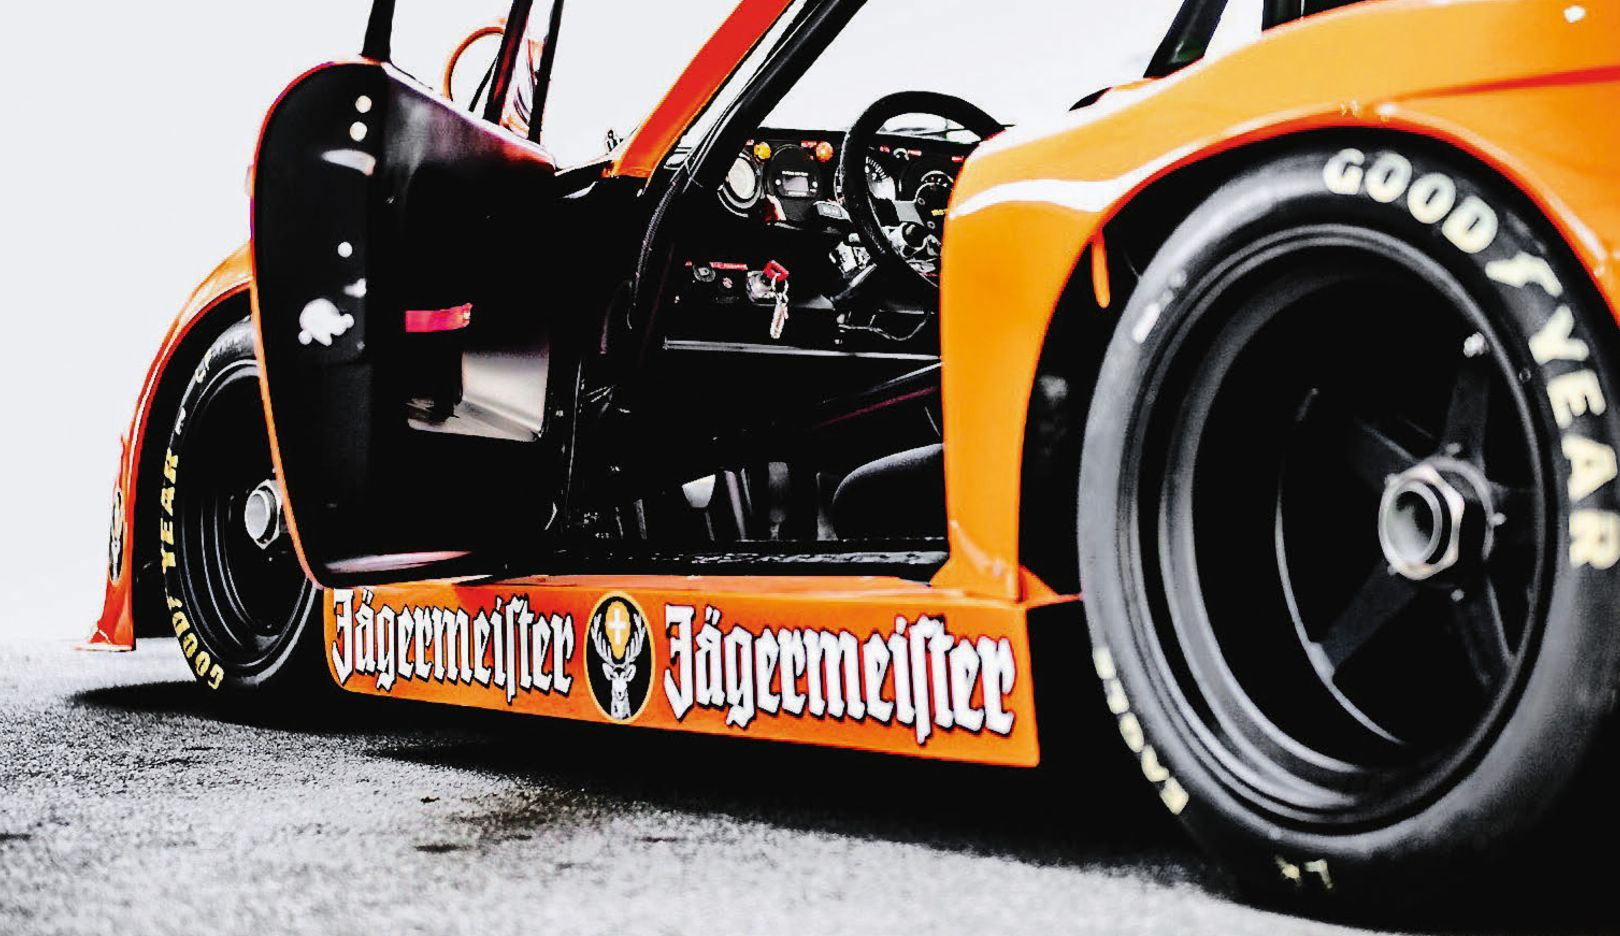 Climb in: A look at the cockpit of the Porsche 935 K3 at the Rennsport Reunion at Laguna Seca.